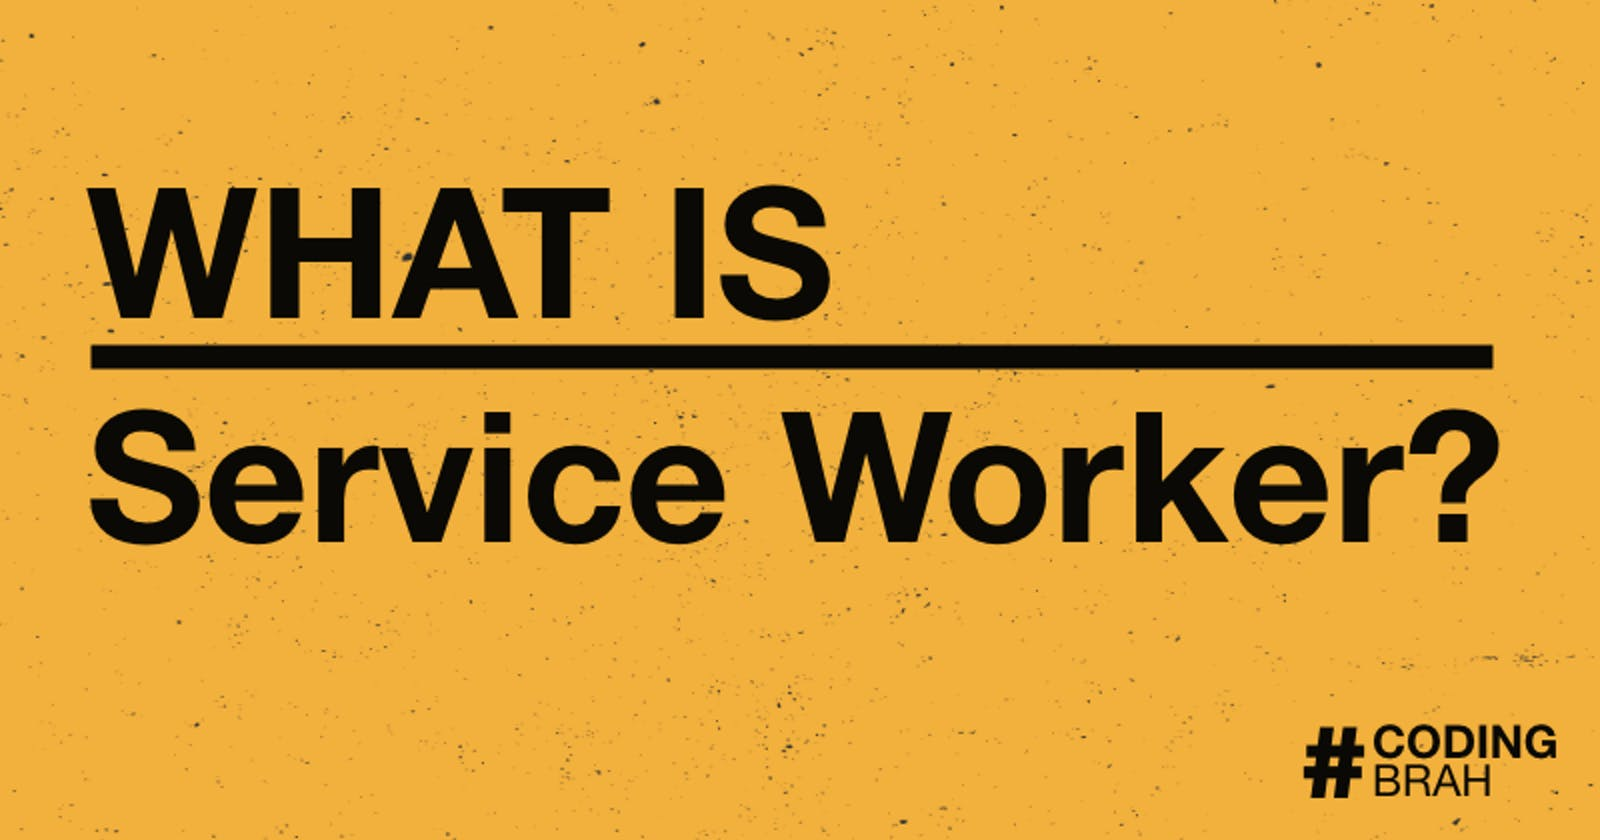 What Is Service Worker?